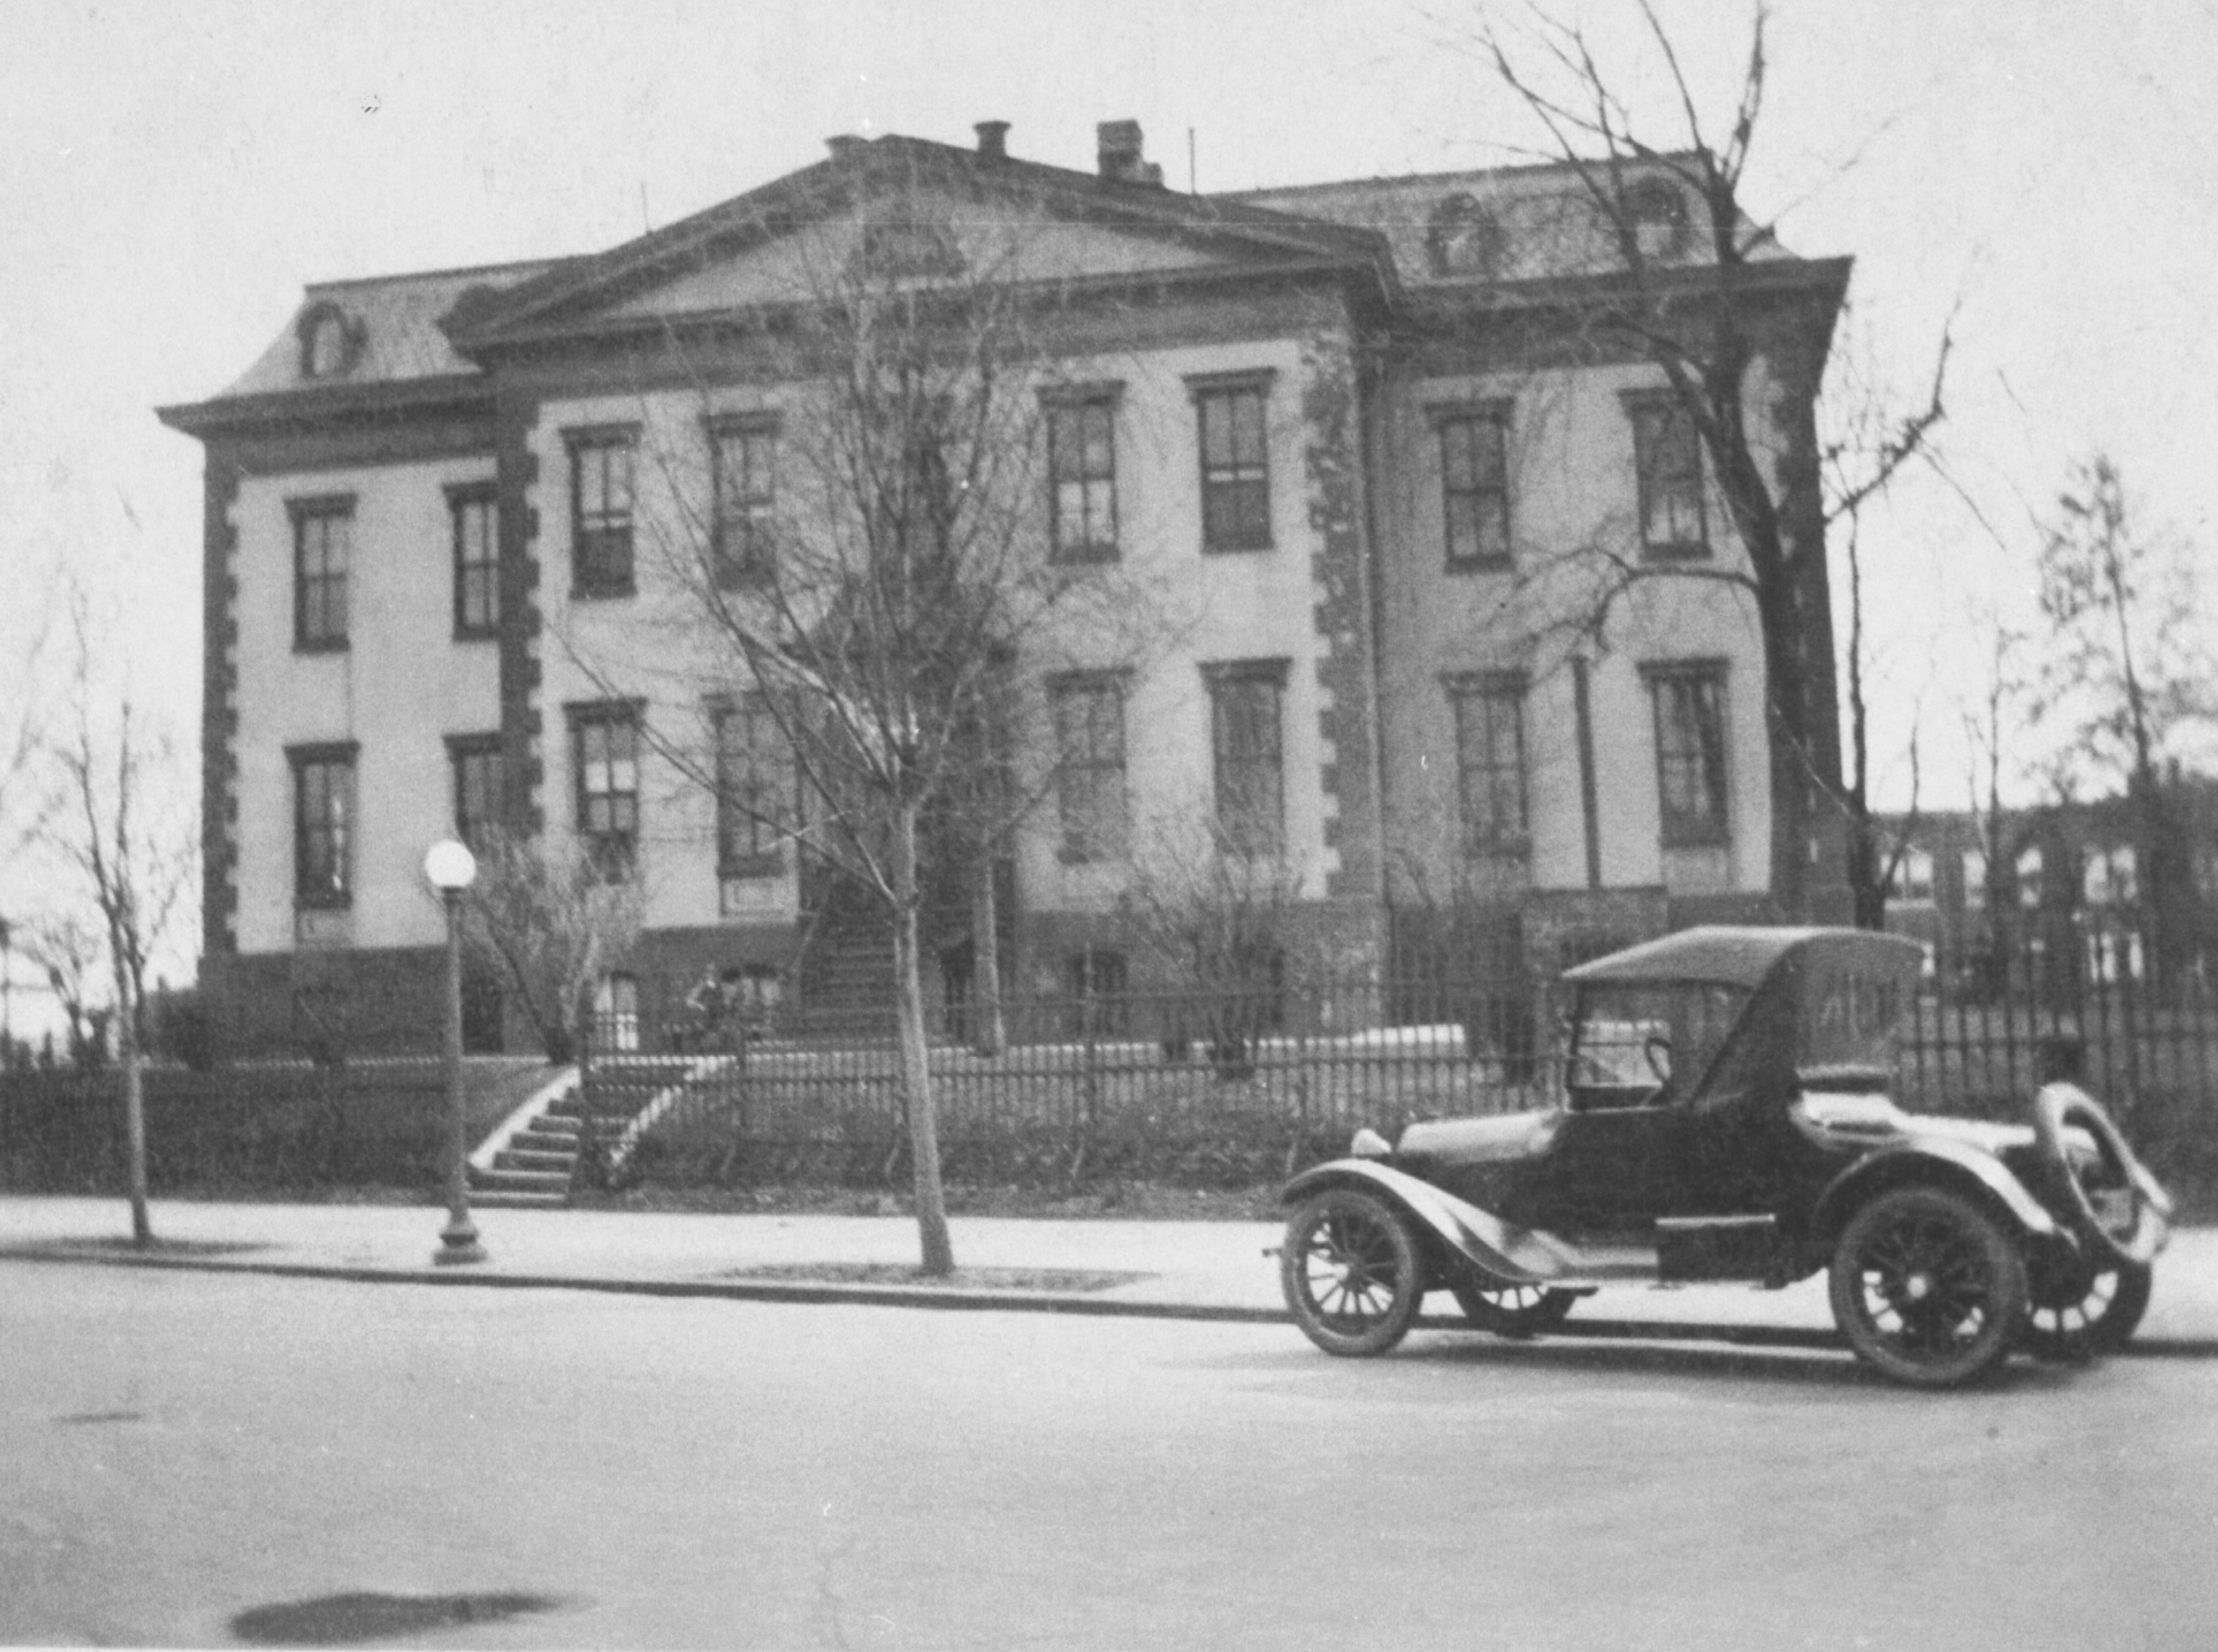 Undated photograph of the of the Old Naval Hospital from the North